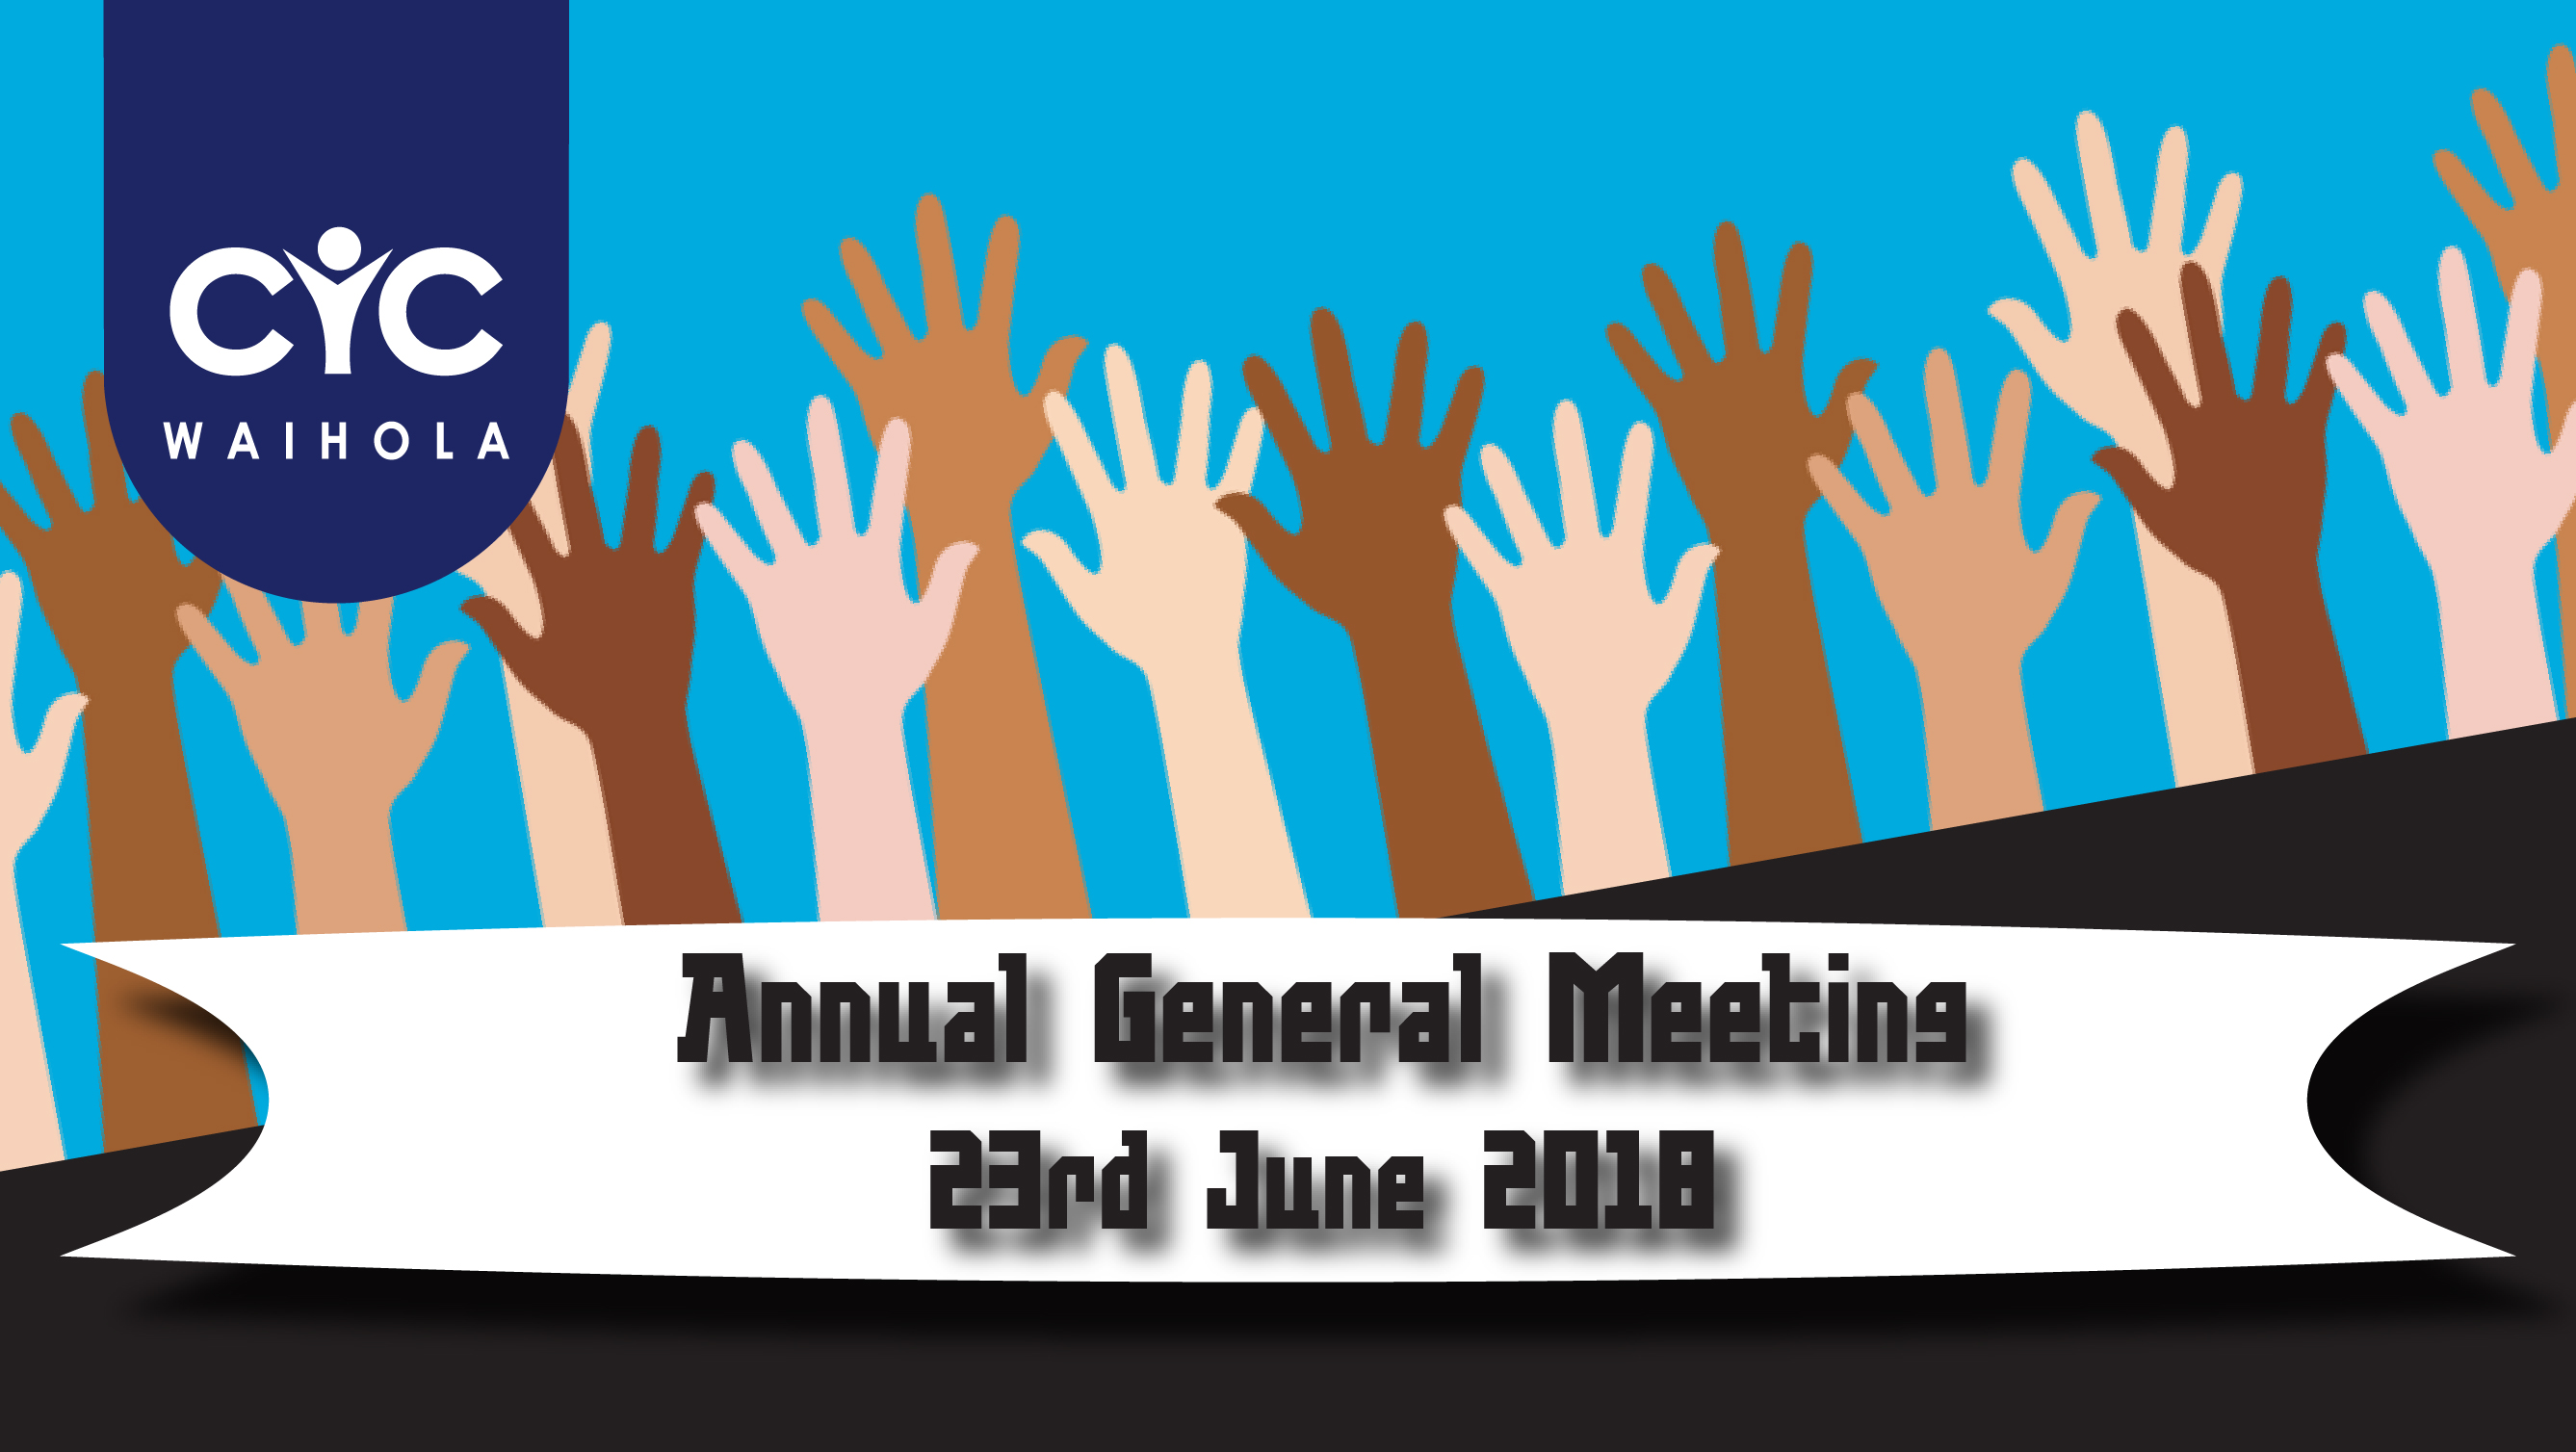 Annual General Meeting for CYC 2018